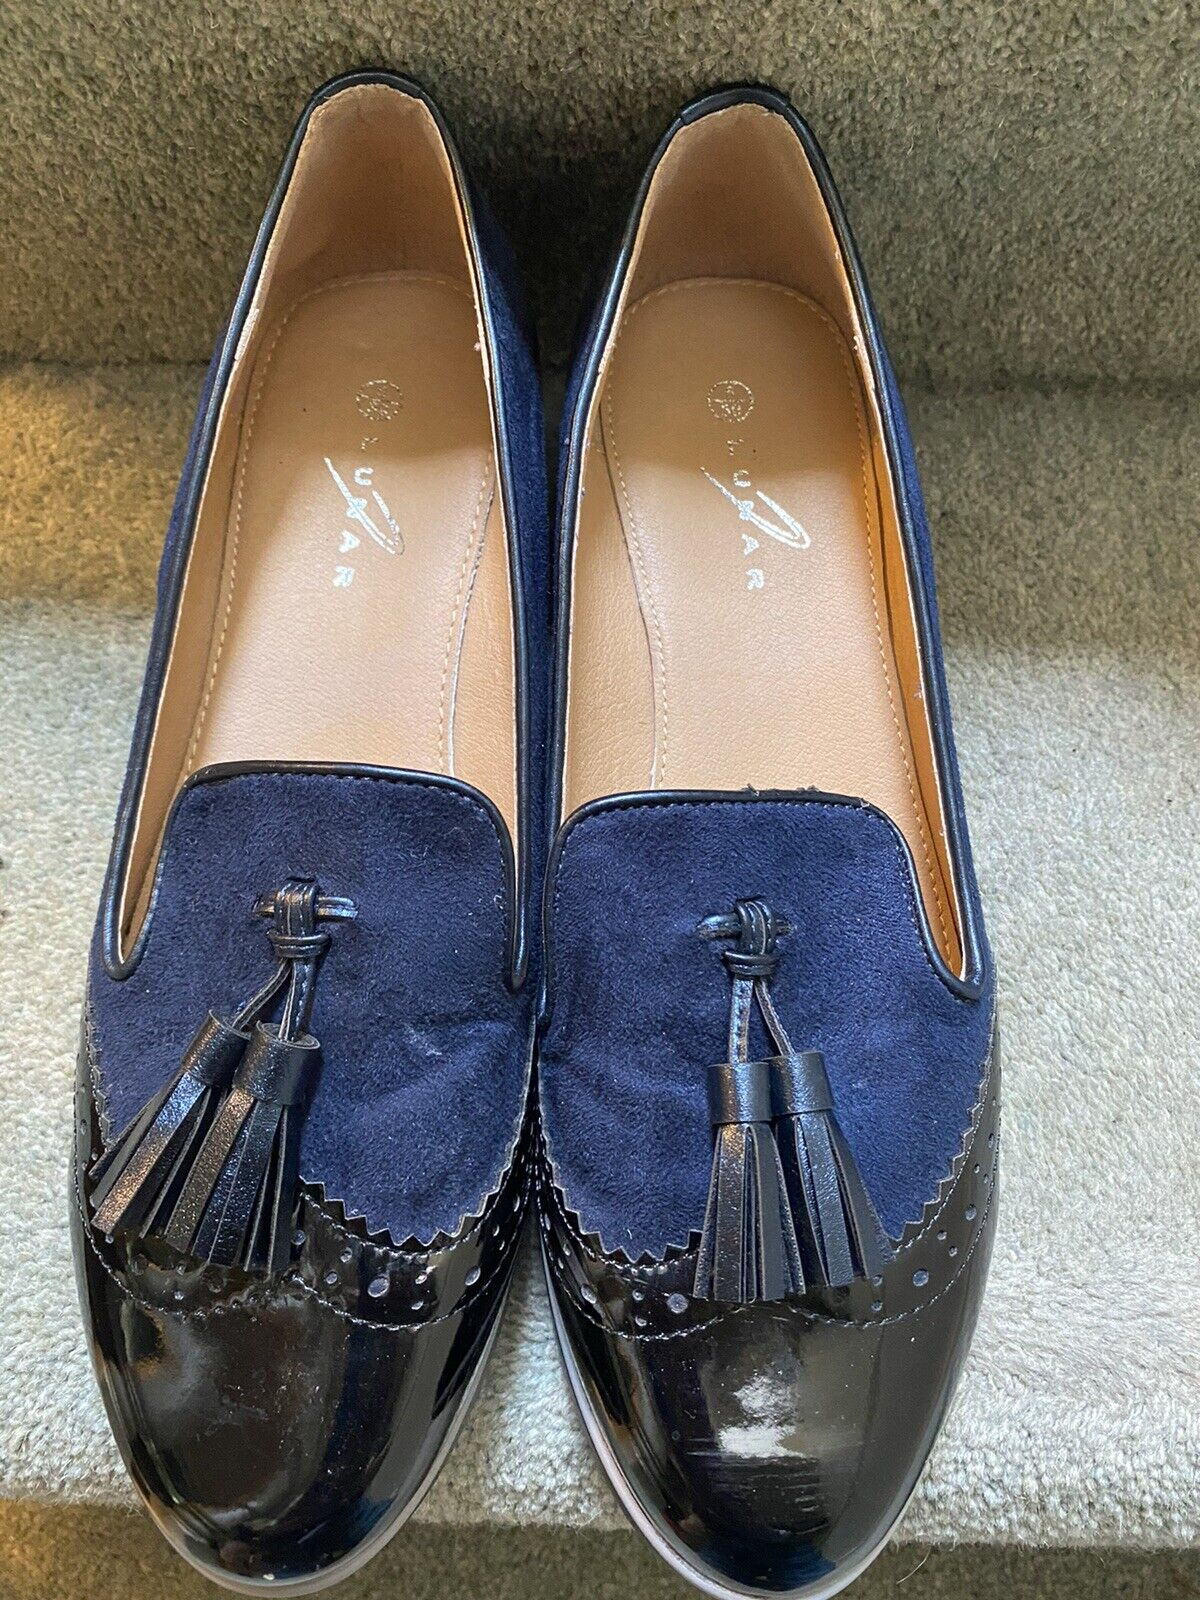 Lunar Navy Slip On Wedge Shoes Size 6 Used